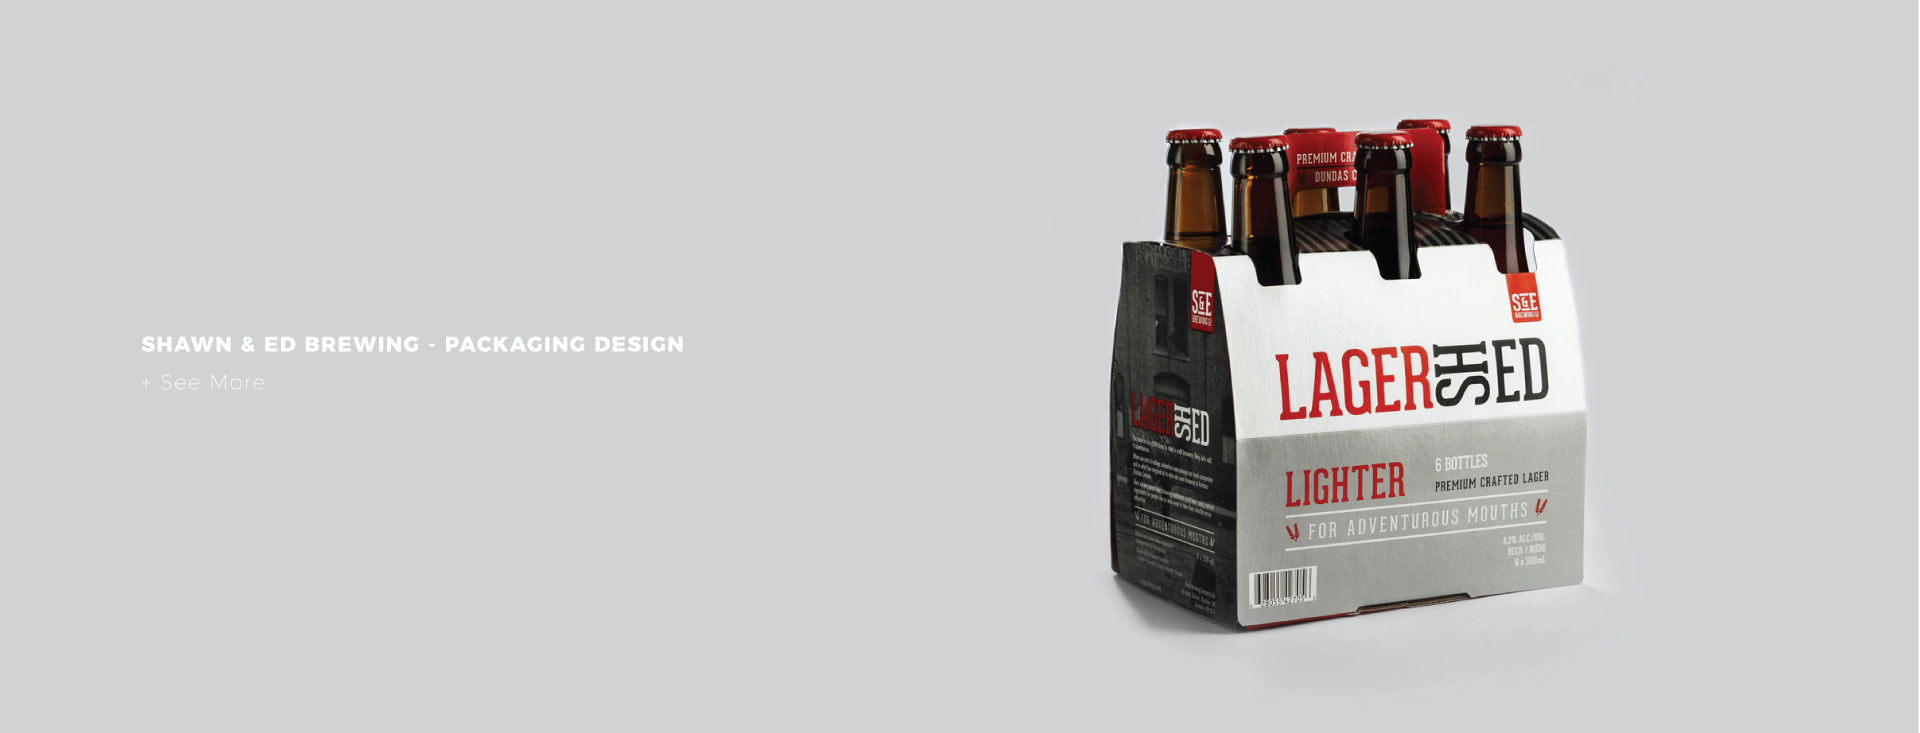 Shawn & Ed Brewing - Packaging Design